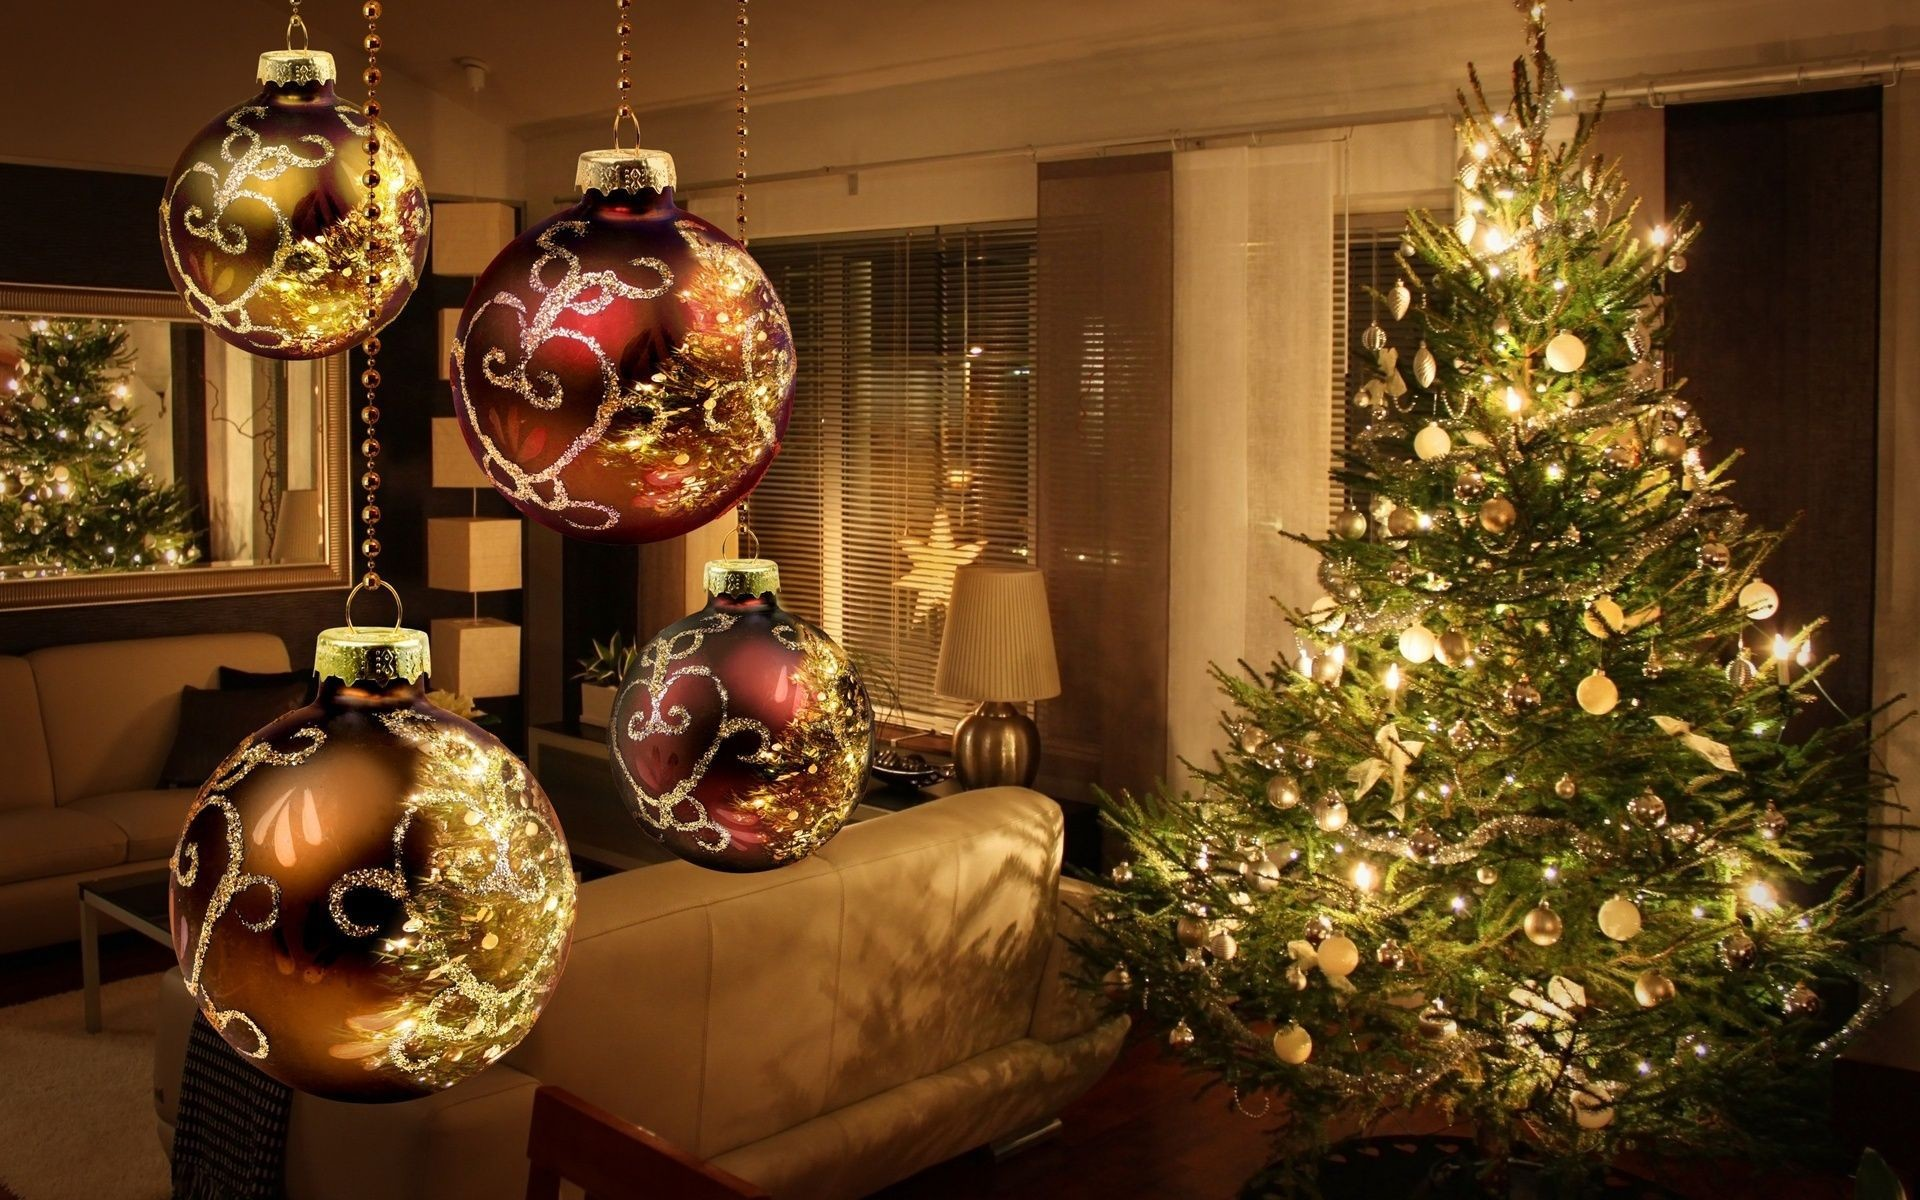 2015 merry Christmas backgrounds desktop – wallpapers, images .